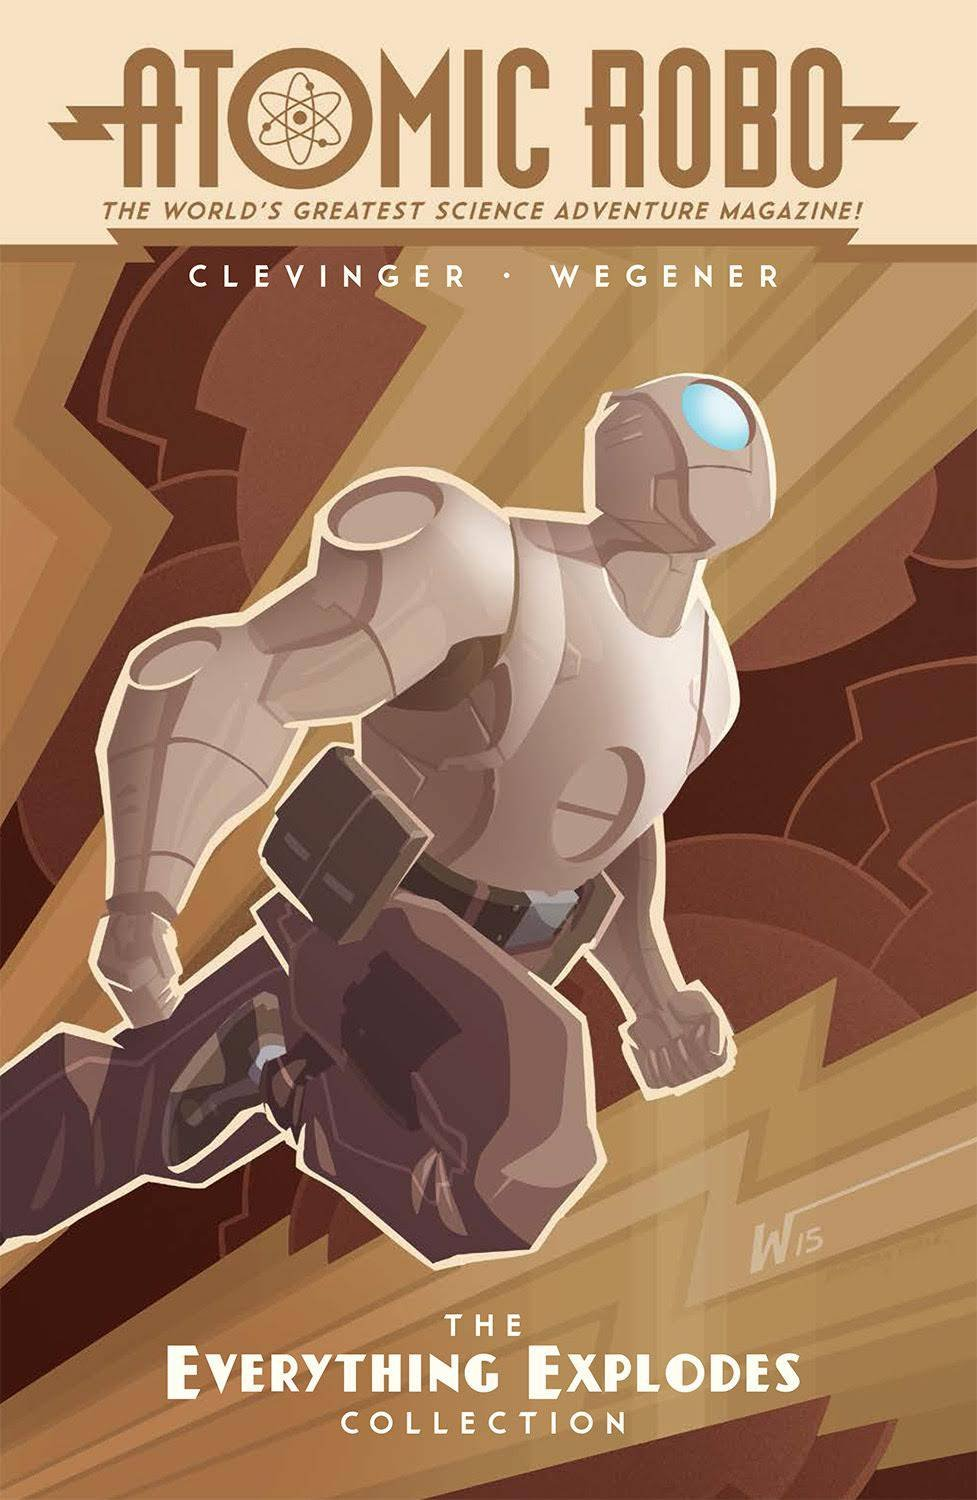 Atomic Robo, IDW Publishing, Red 5, Brian Clevinger, Scott Wegener, robot, Everything Explodes Collection, Action Scientists, Nikola Tesla, Tesladyne Industries, webcomic, trade paperback